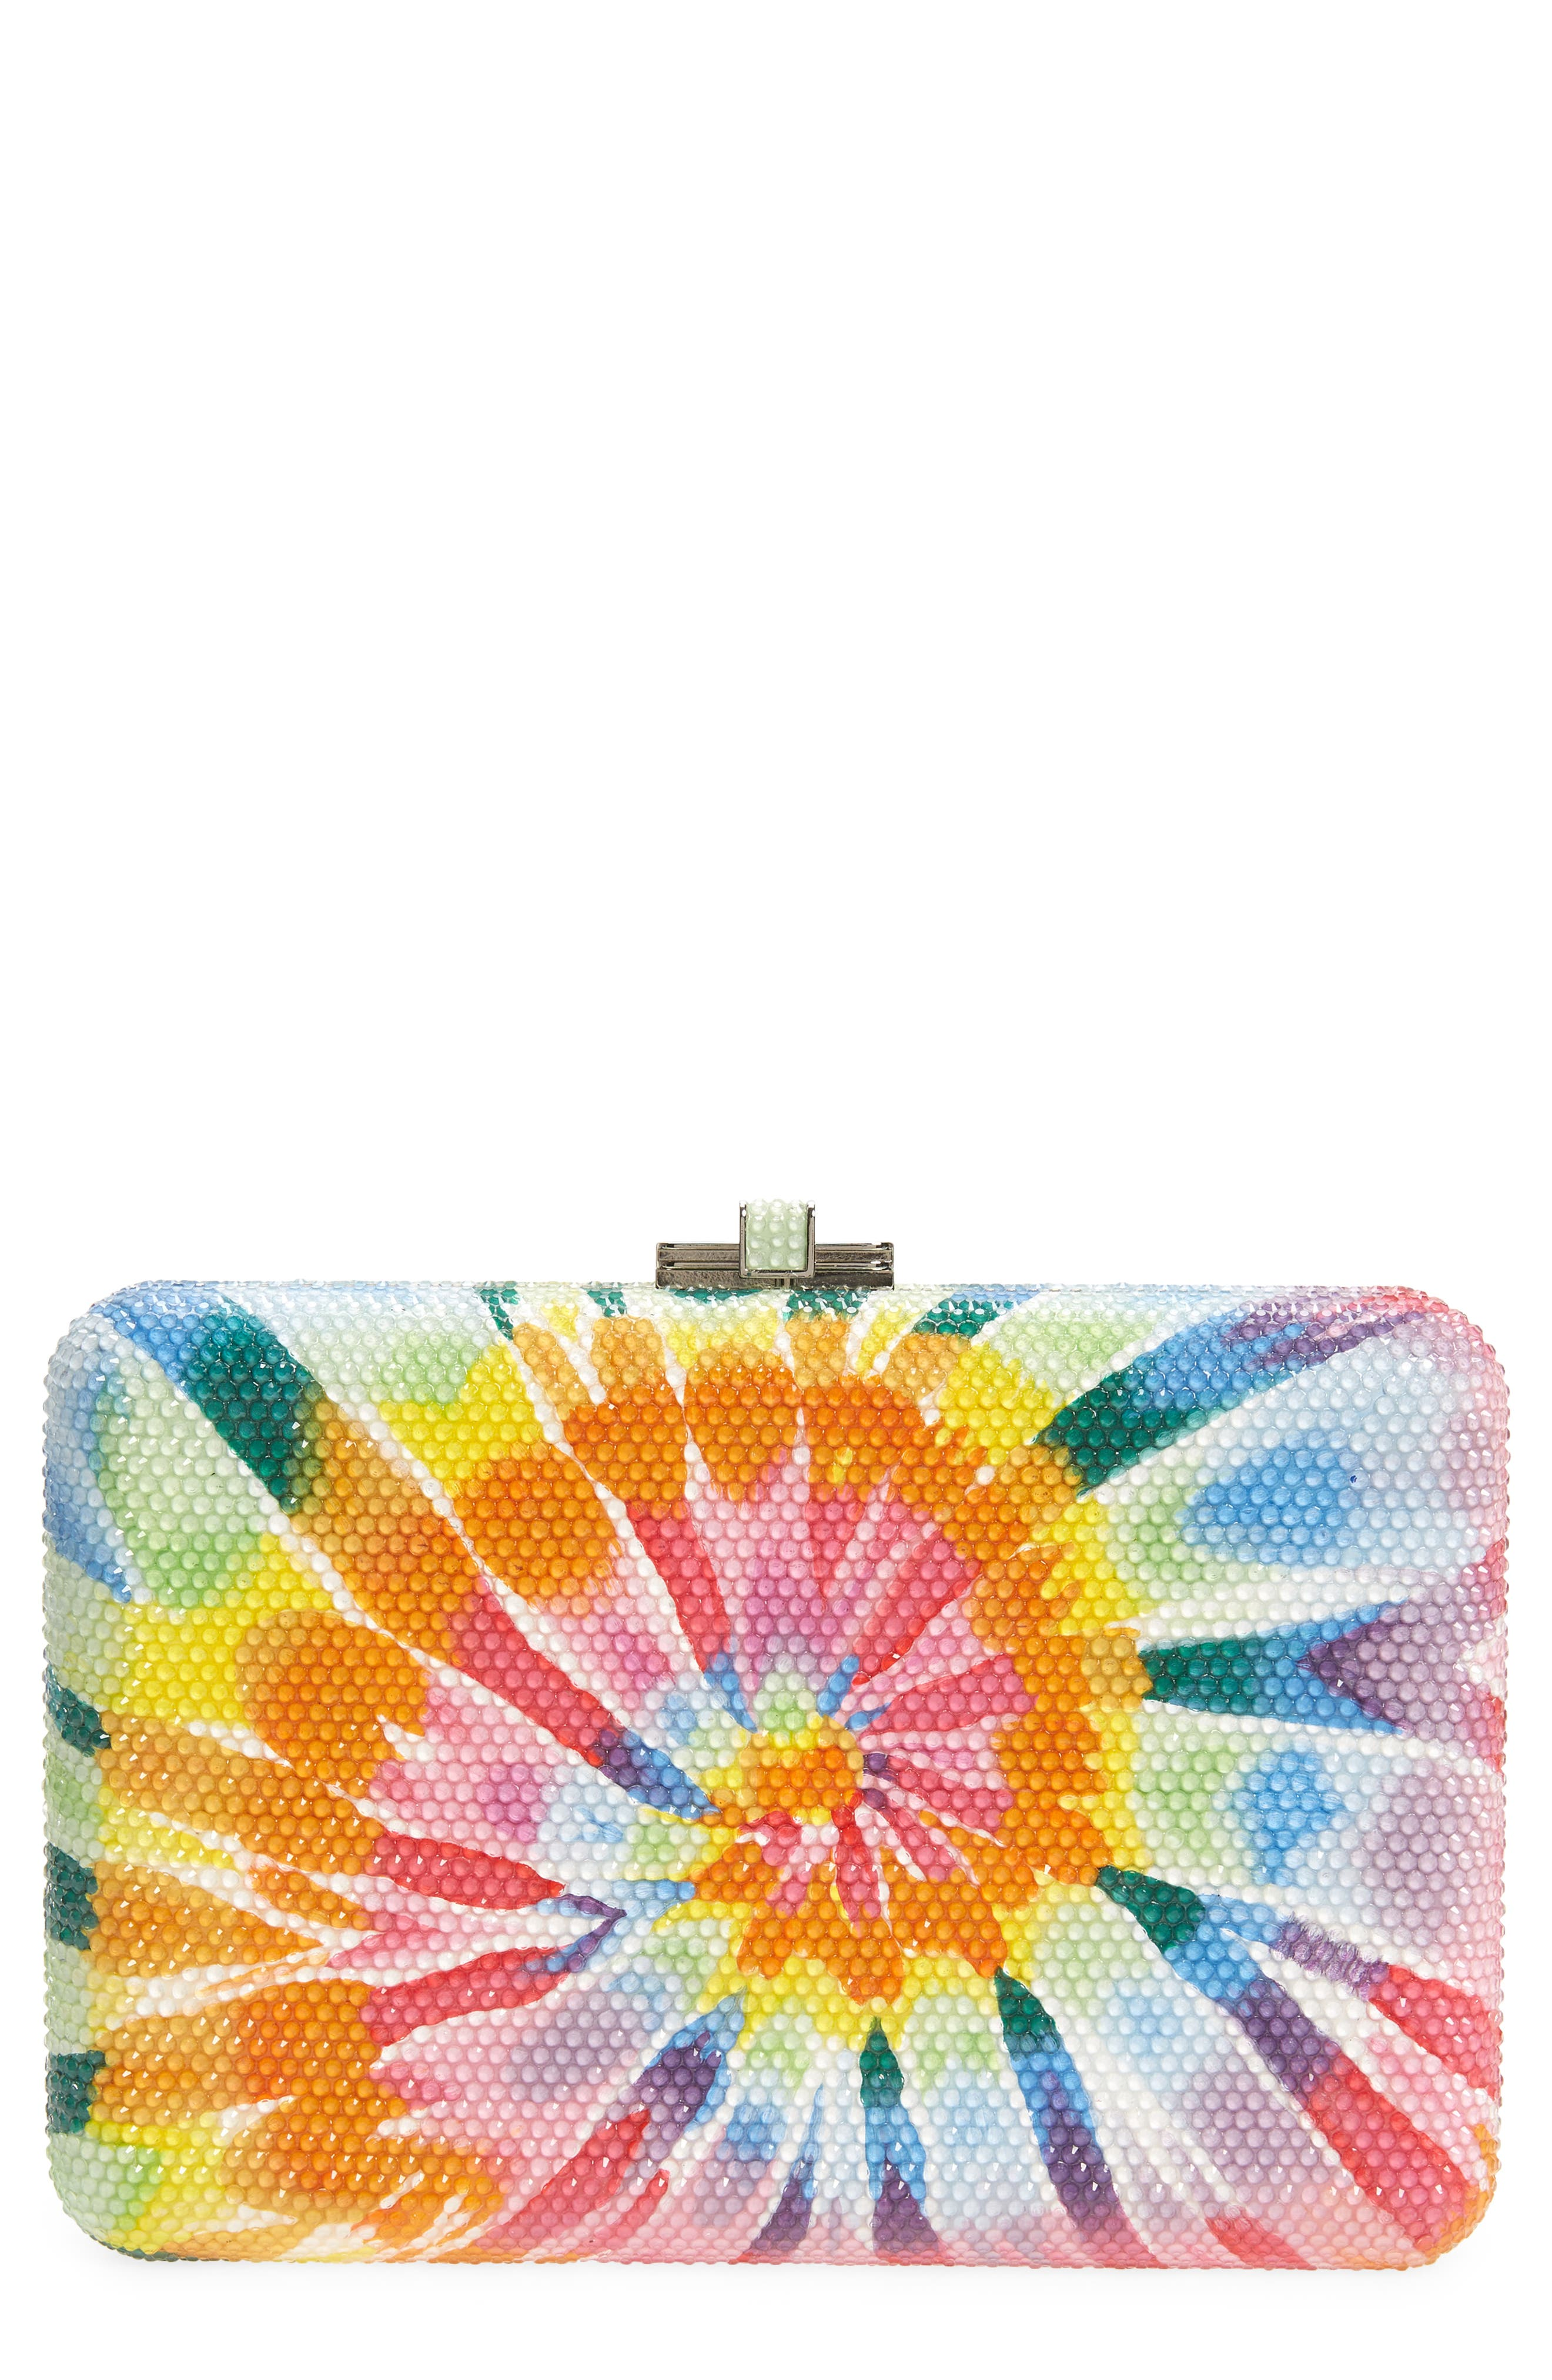 Couture Jerry Slim Slide Tie Dye Crystal Clutch